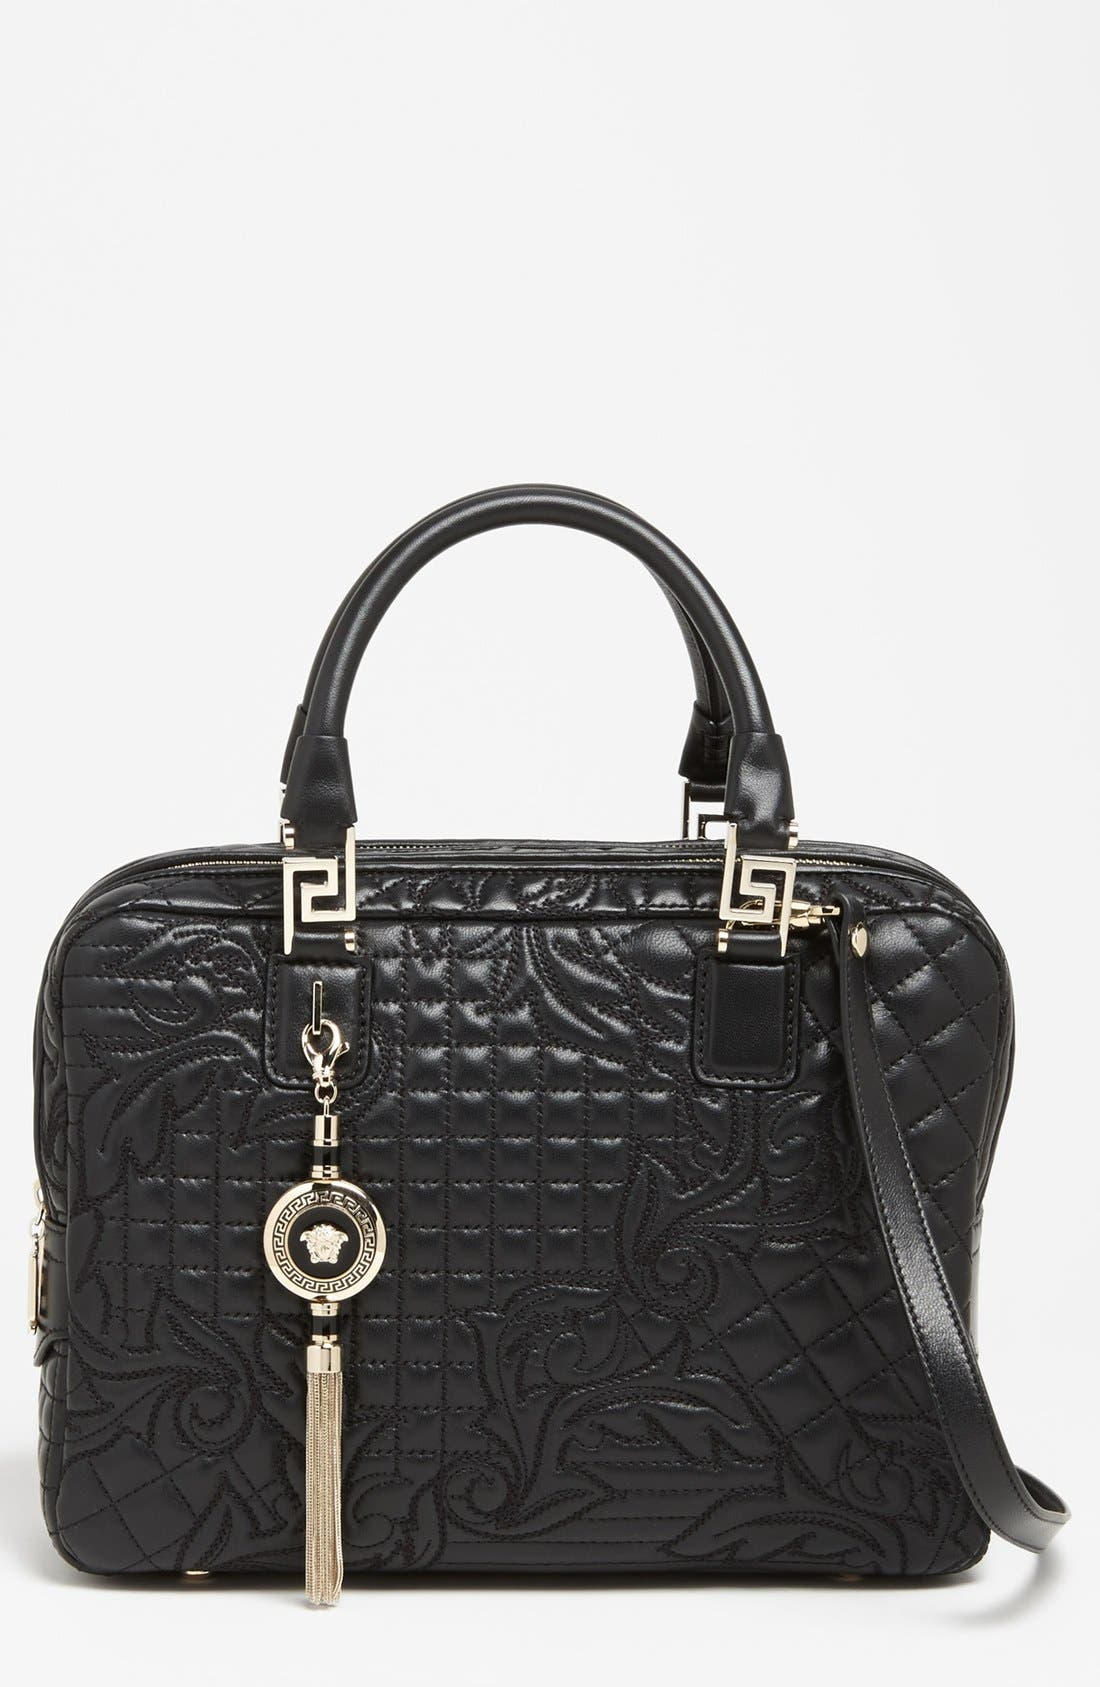 Alternate Image 1 Selected - Versace 'Linea' Embroidered Leather Satchel